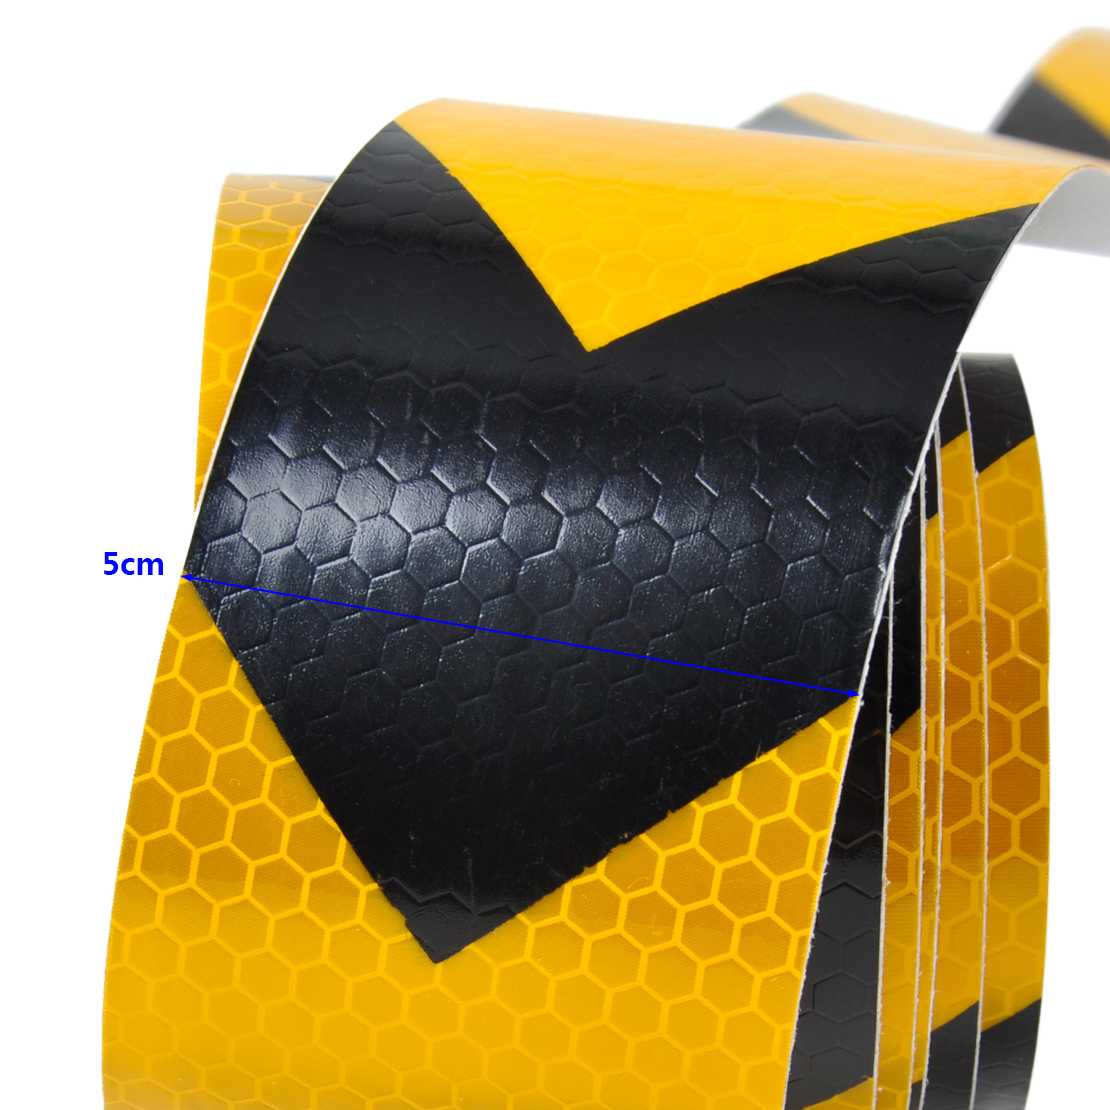 Arrow Safety Warning Conspicuity Reflective Tape Marking